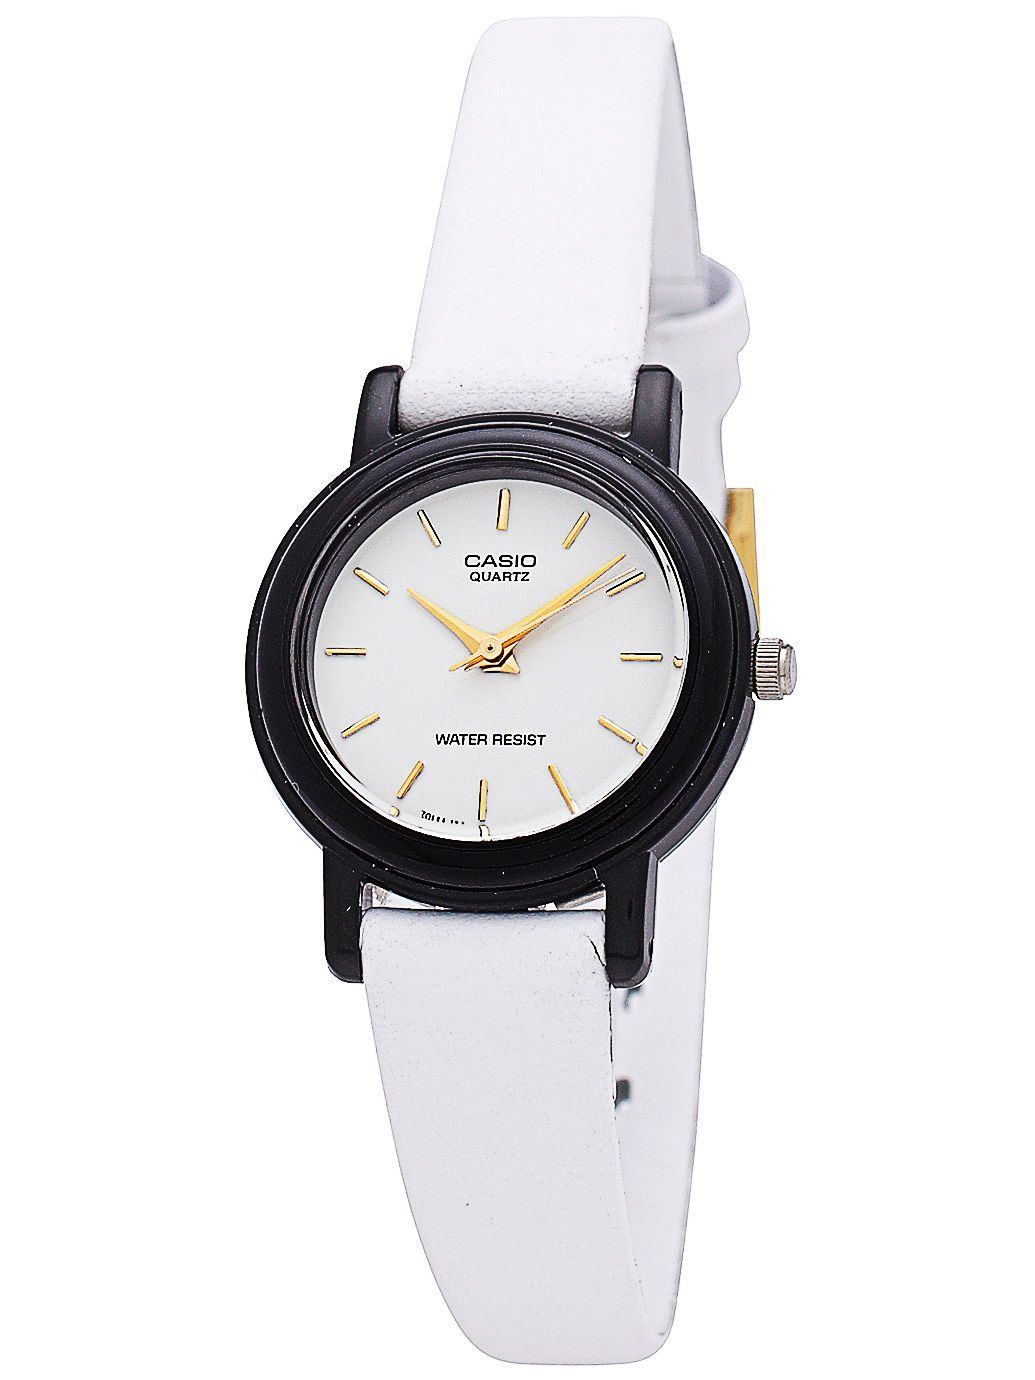 Solid White Leather Limited Edition Wristwatch. #AmericanApparel